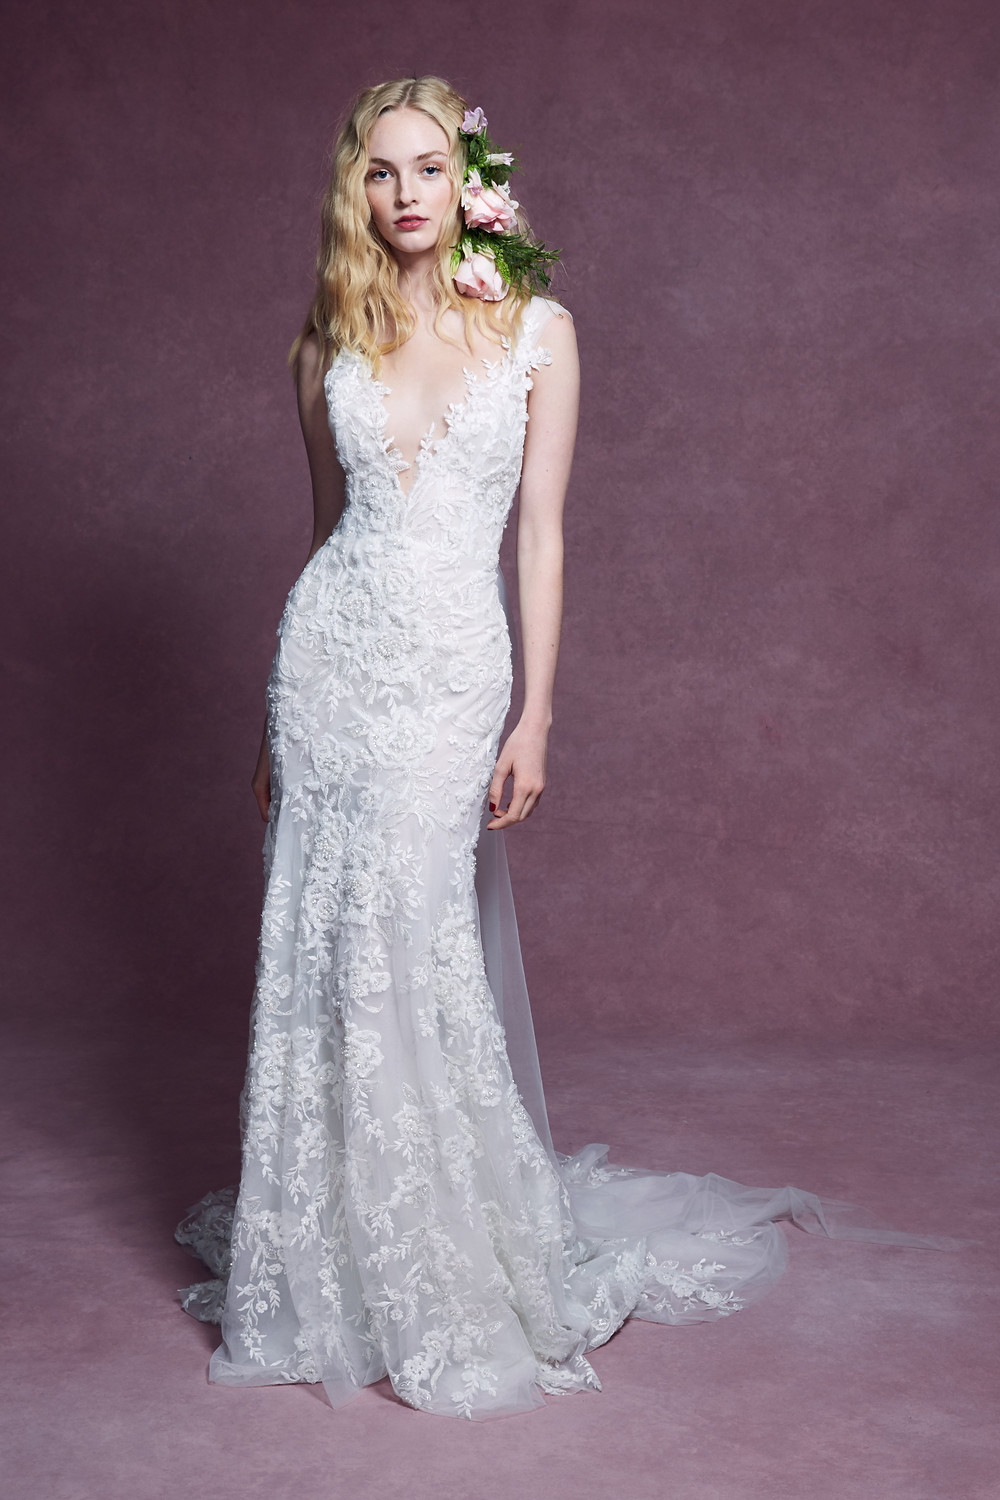 A Marchesa 2020 lace mermaid wedding dress with a low v neckline and delicate embroidery